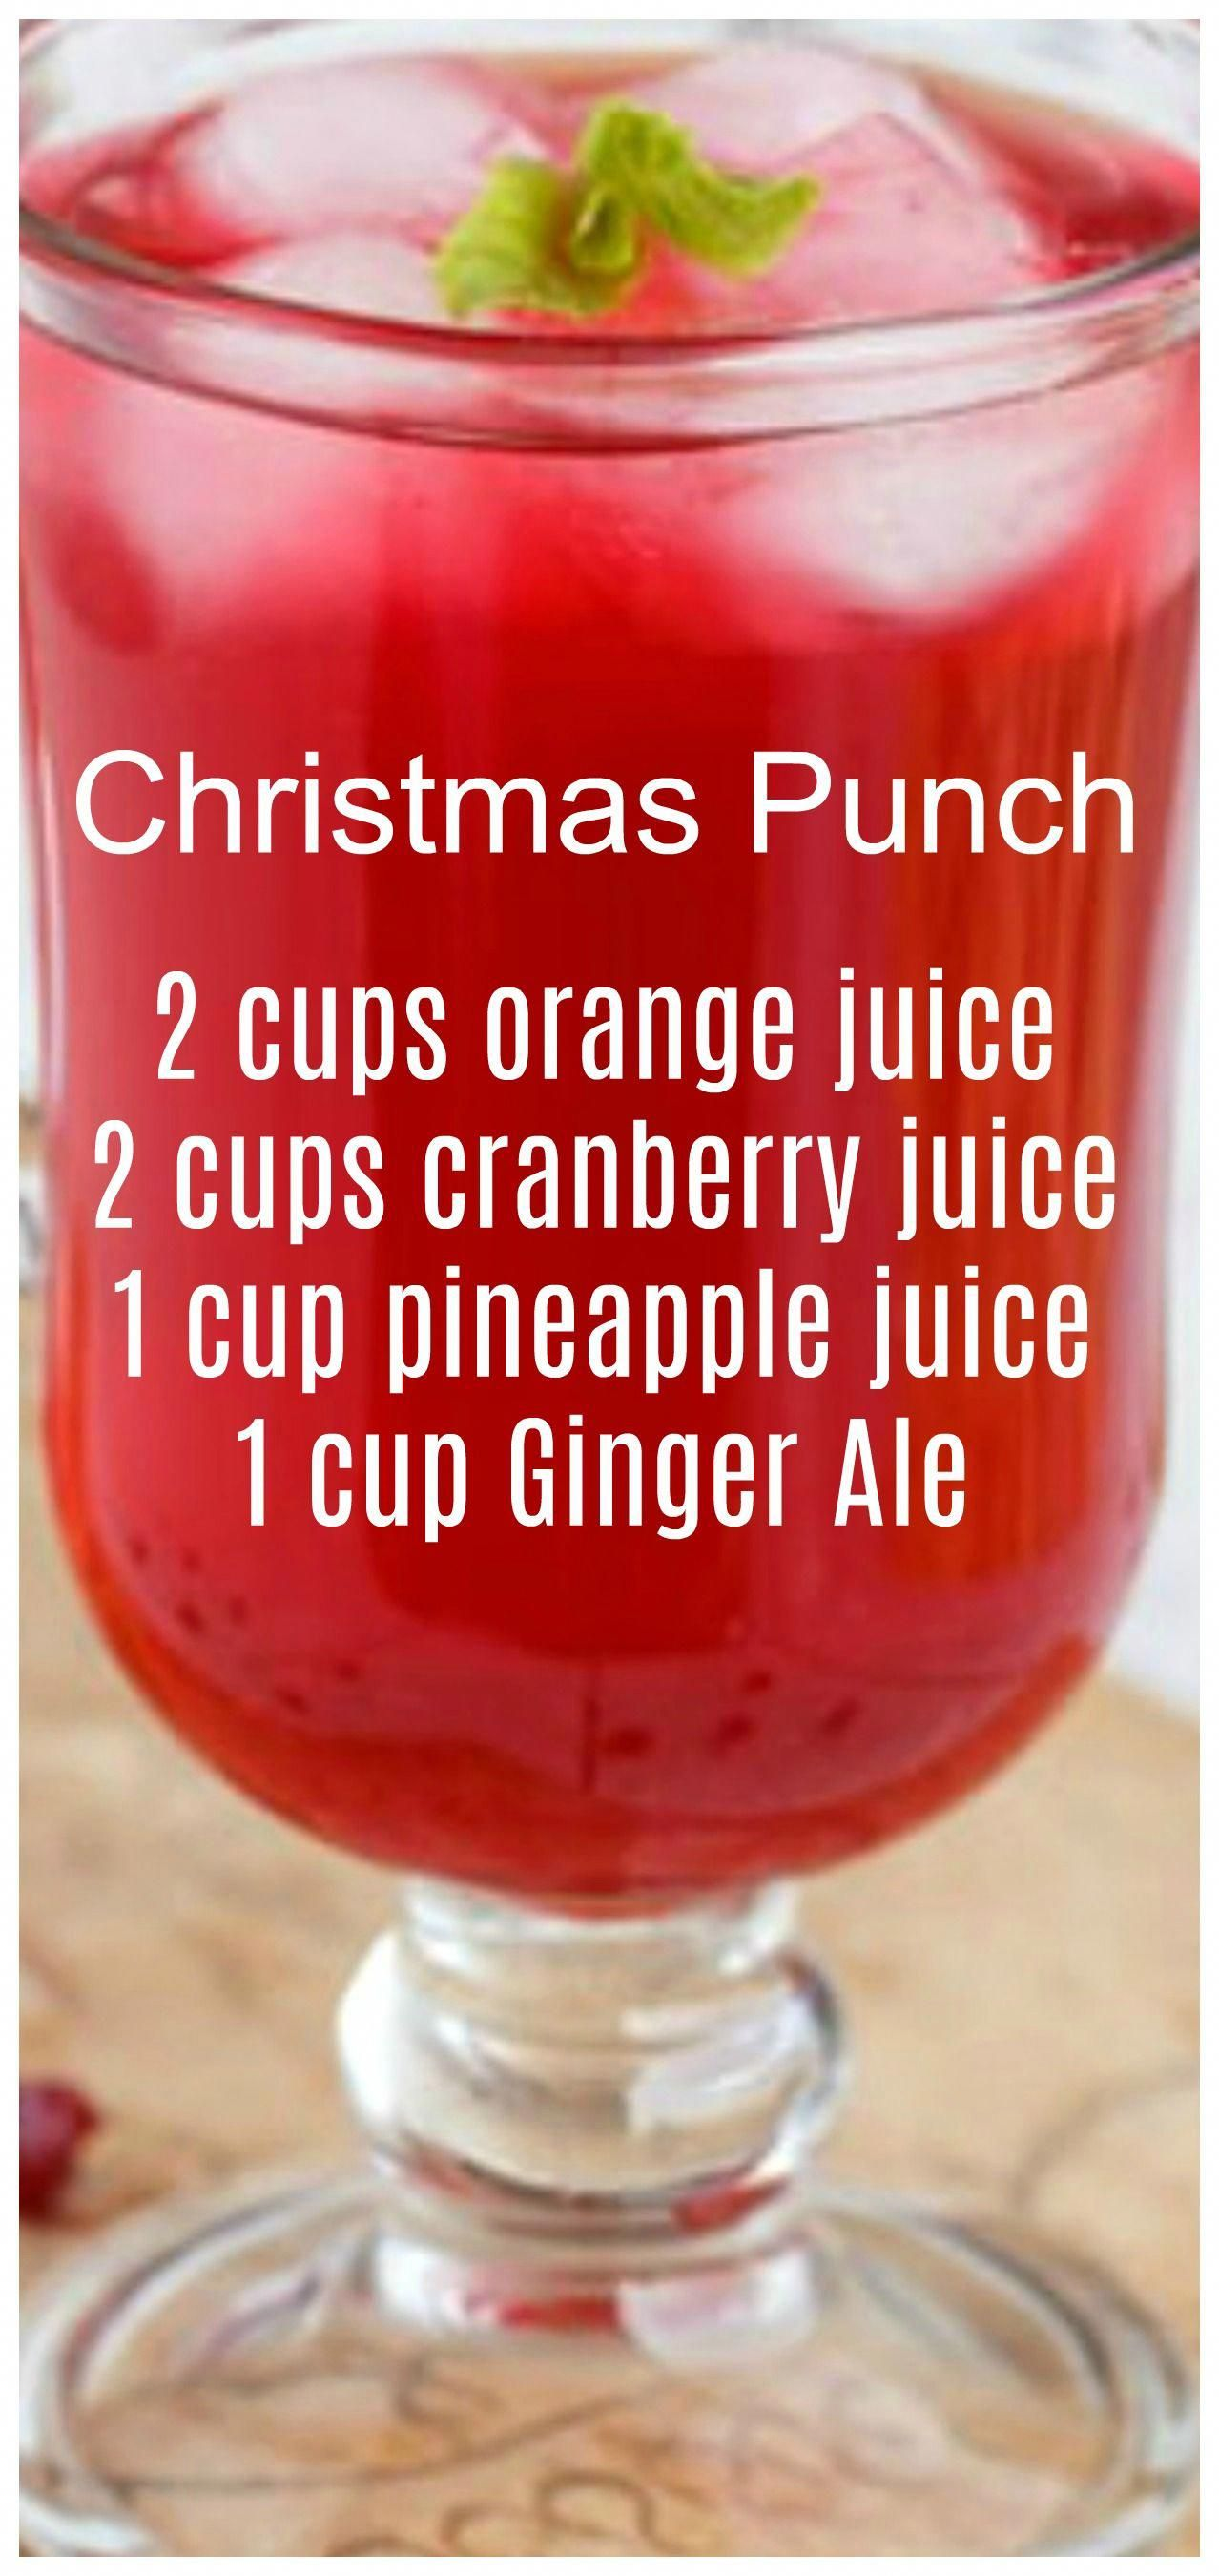 Christmas Punch So Simple To Make And Delicious We Like To Serve This Punch On Christmas Morning Go In 2020 Christmas Punch Recipes Punch Recipes Christmas Drinks